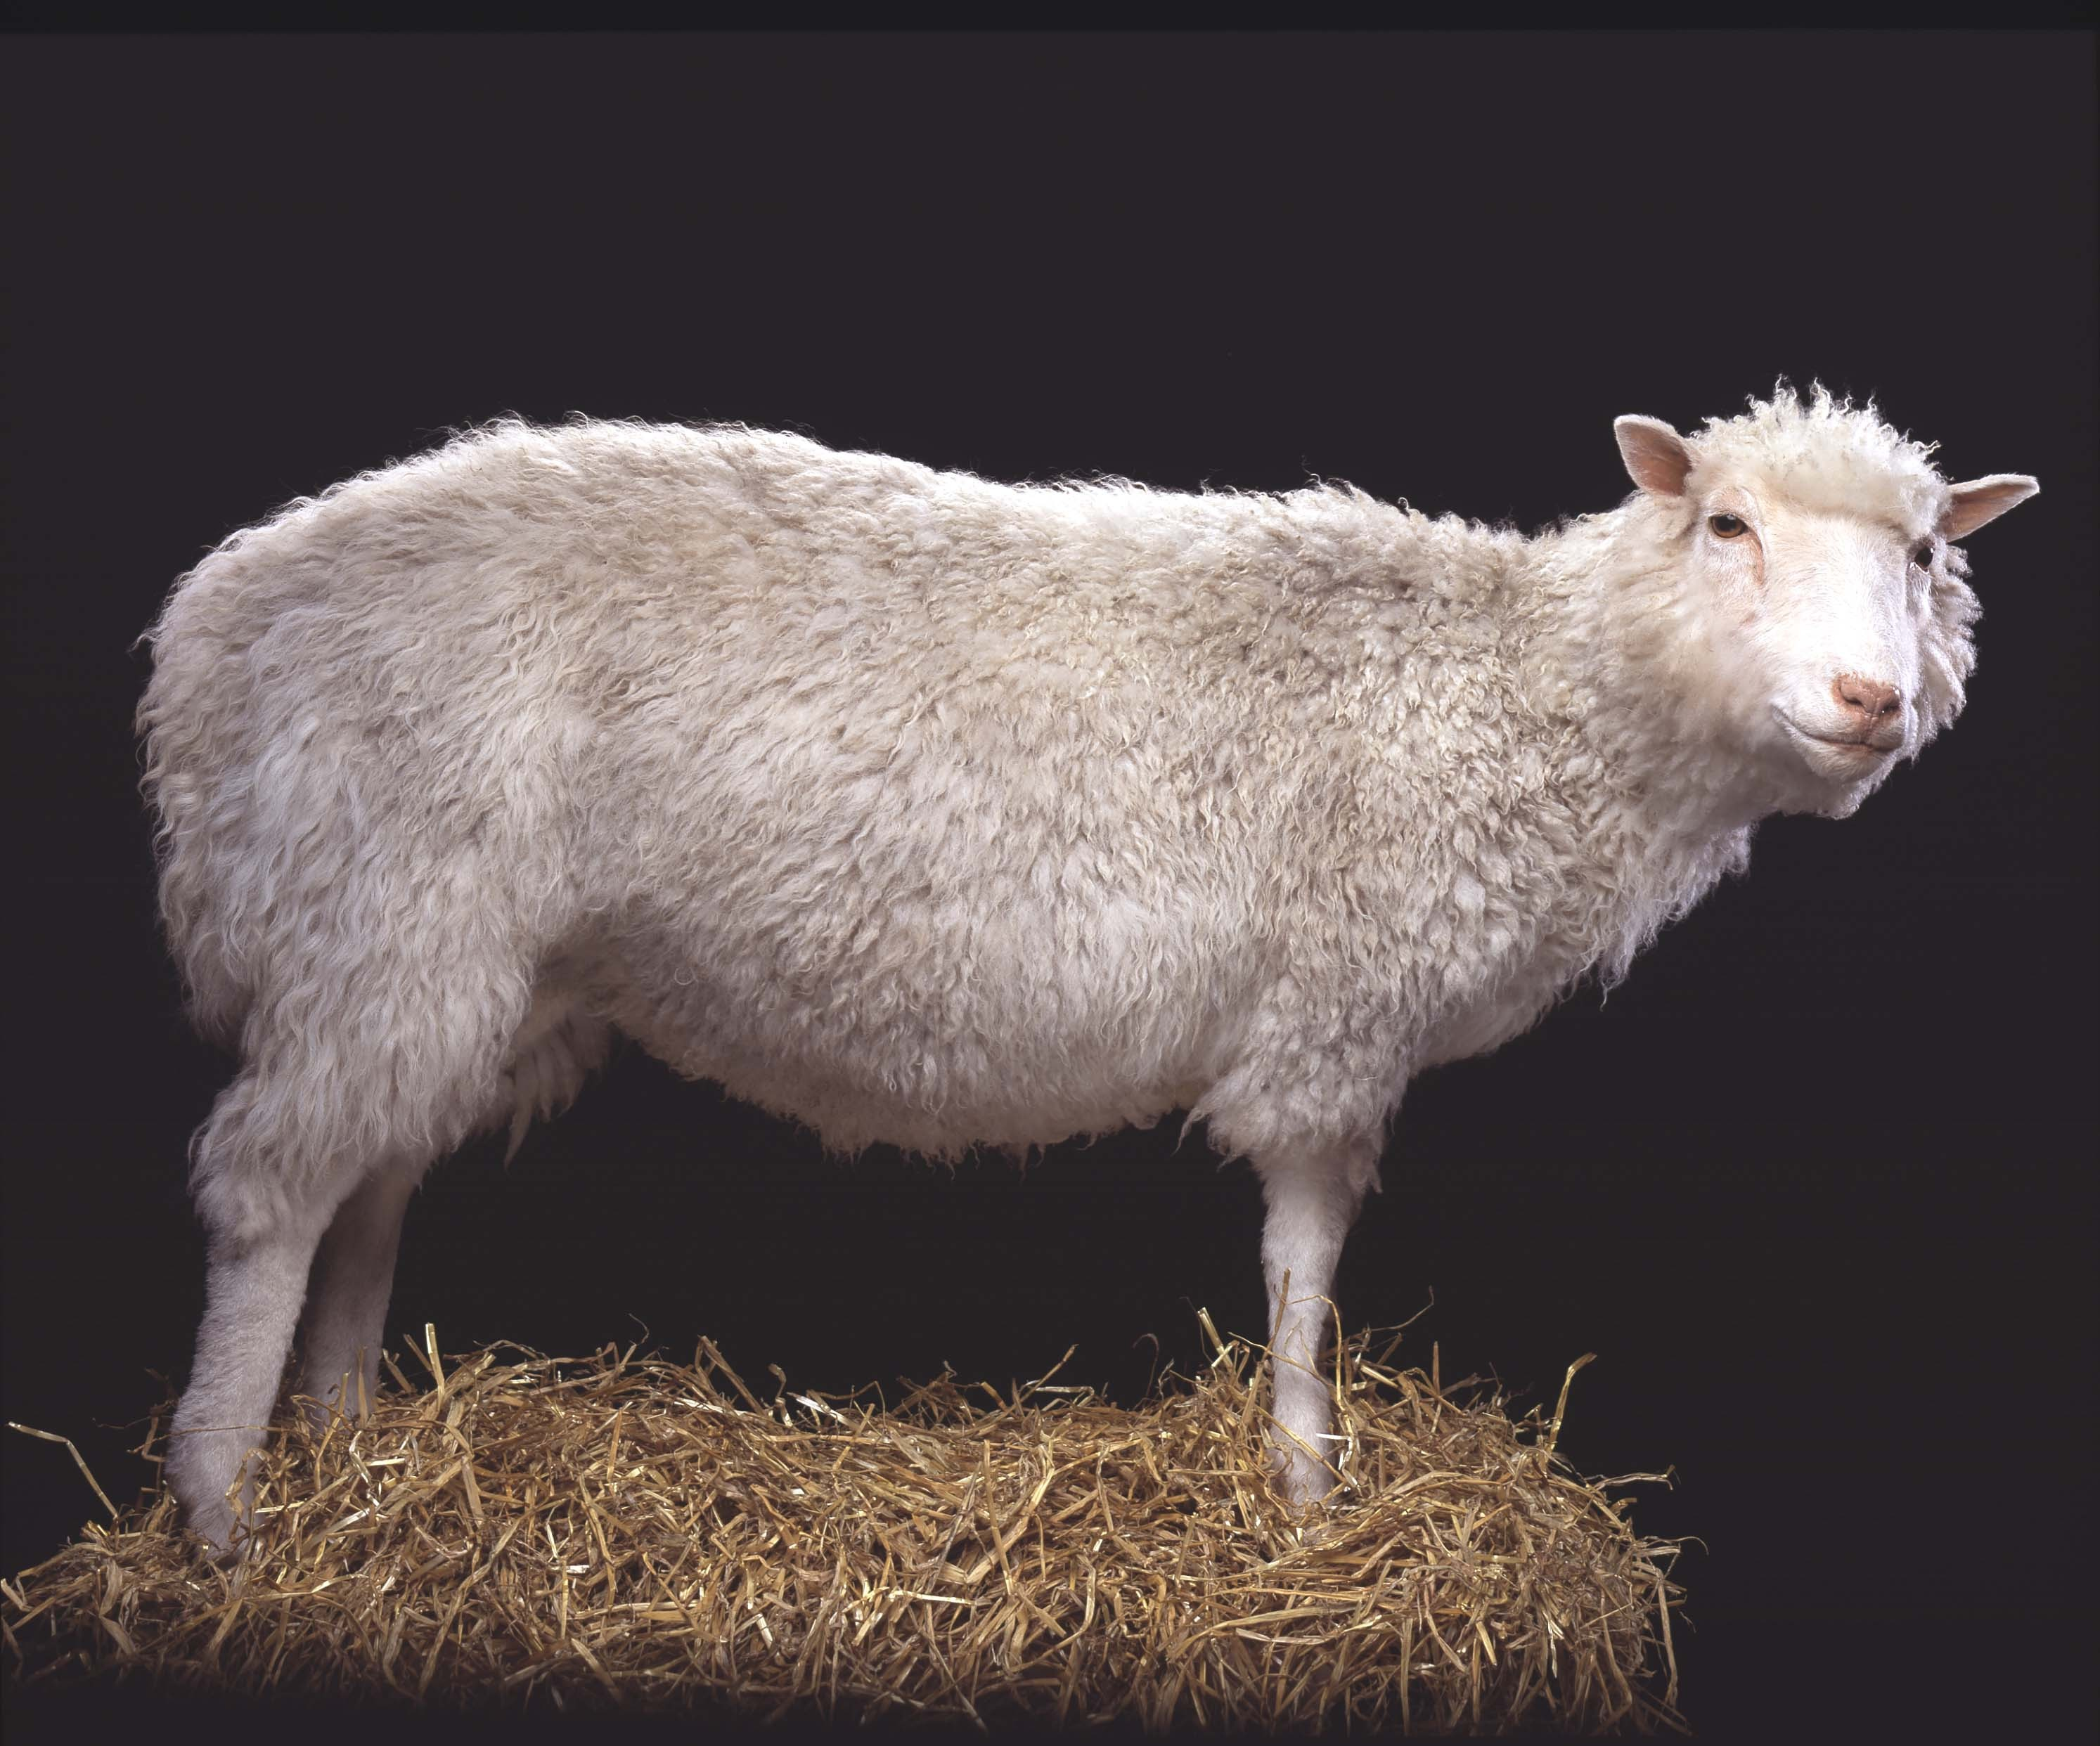 the cloning of dolly sheep What happened in the life of dolly, the famous cloned sheep from scotland read on to find out the short-lived history of this famous sheep.